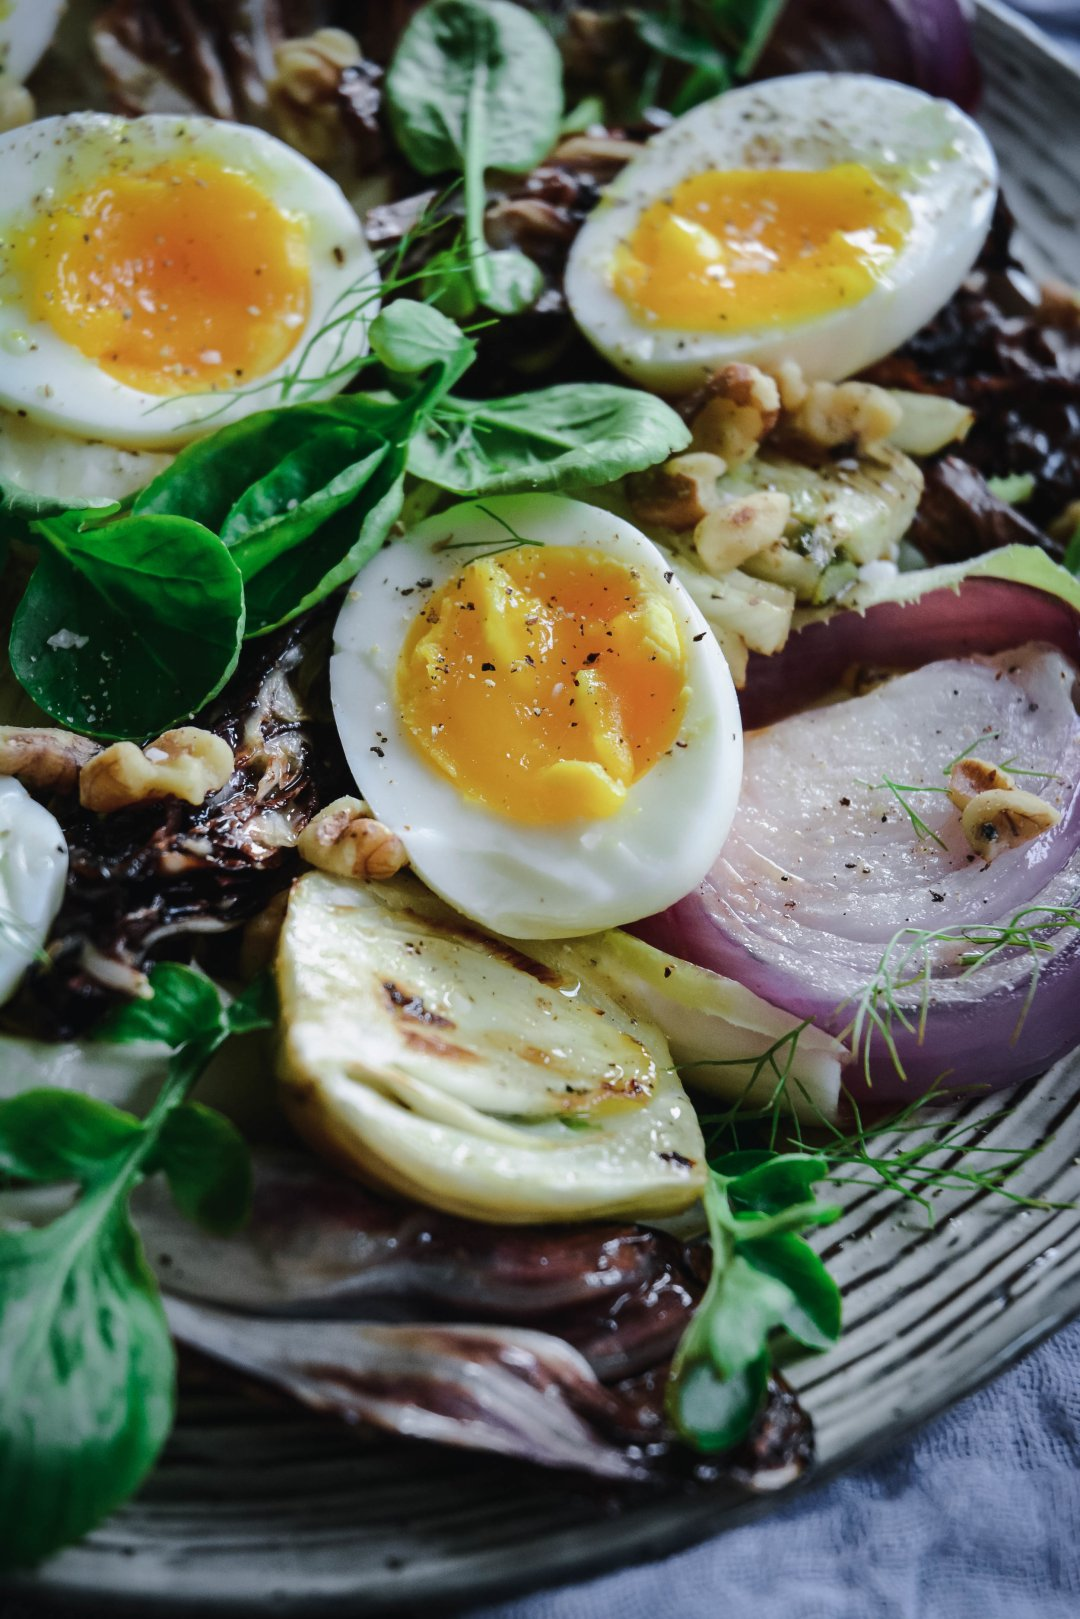 Soft boiled eggs on salad